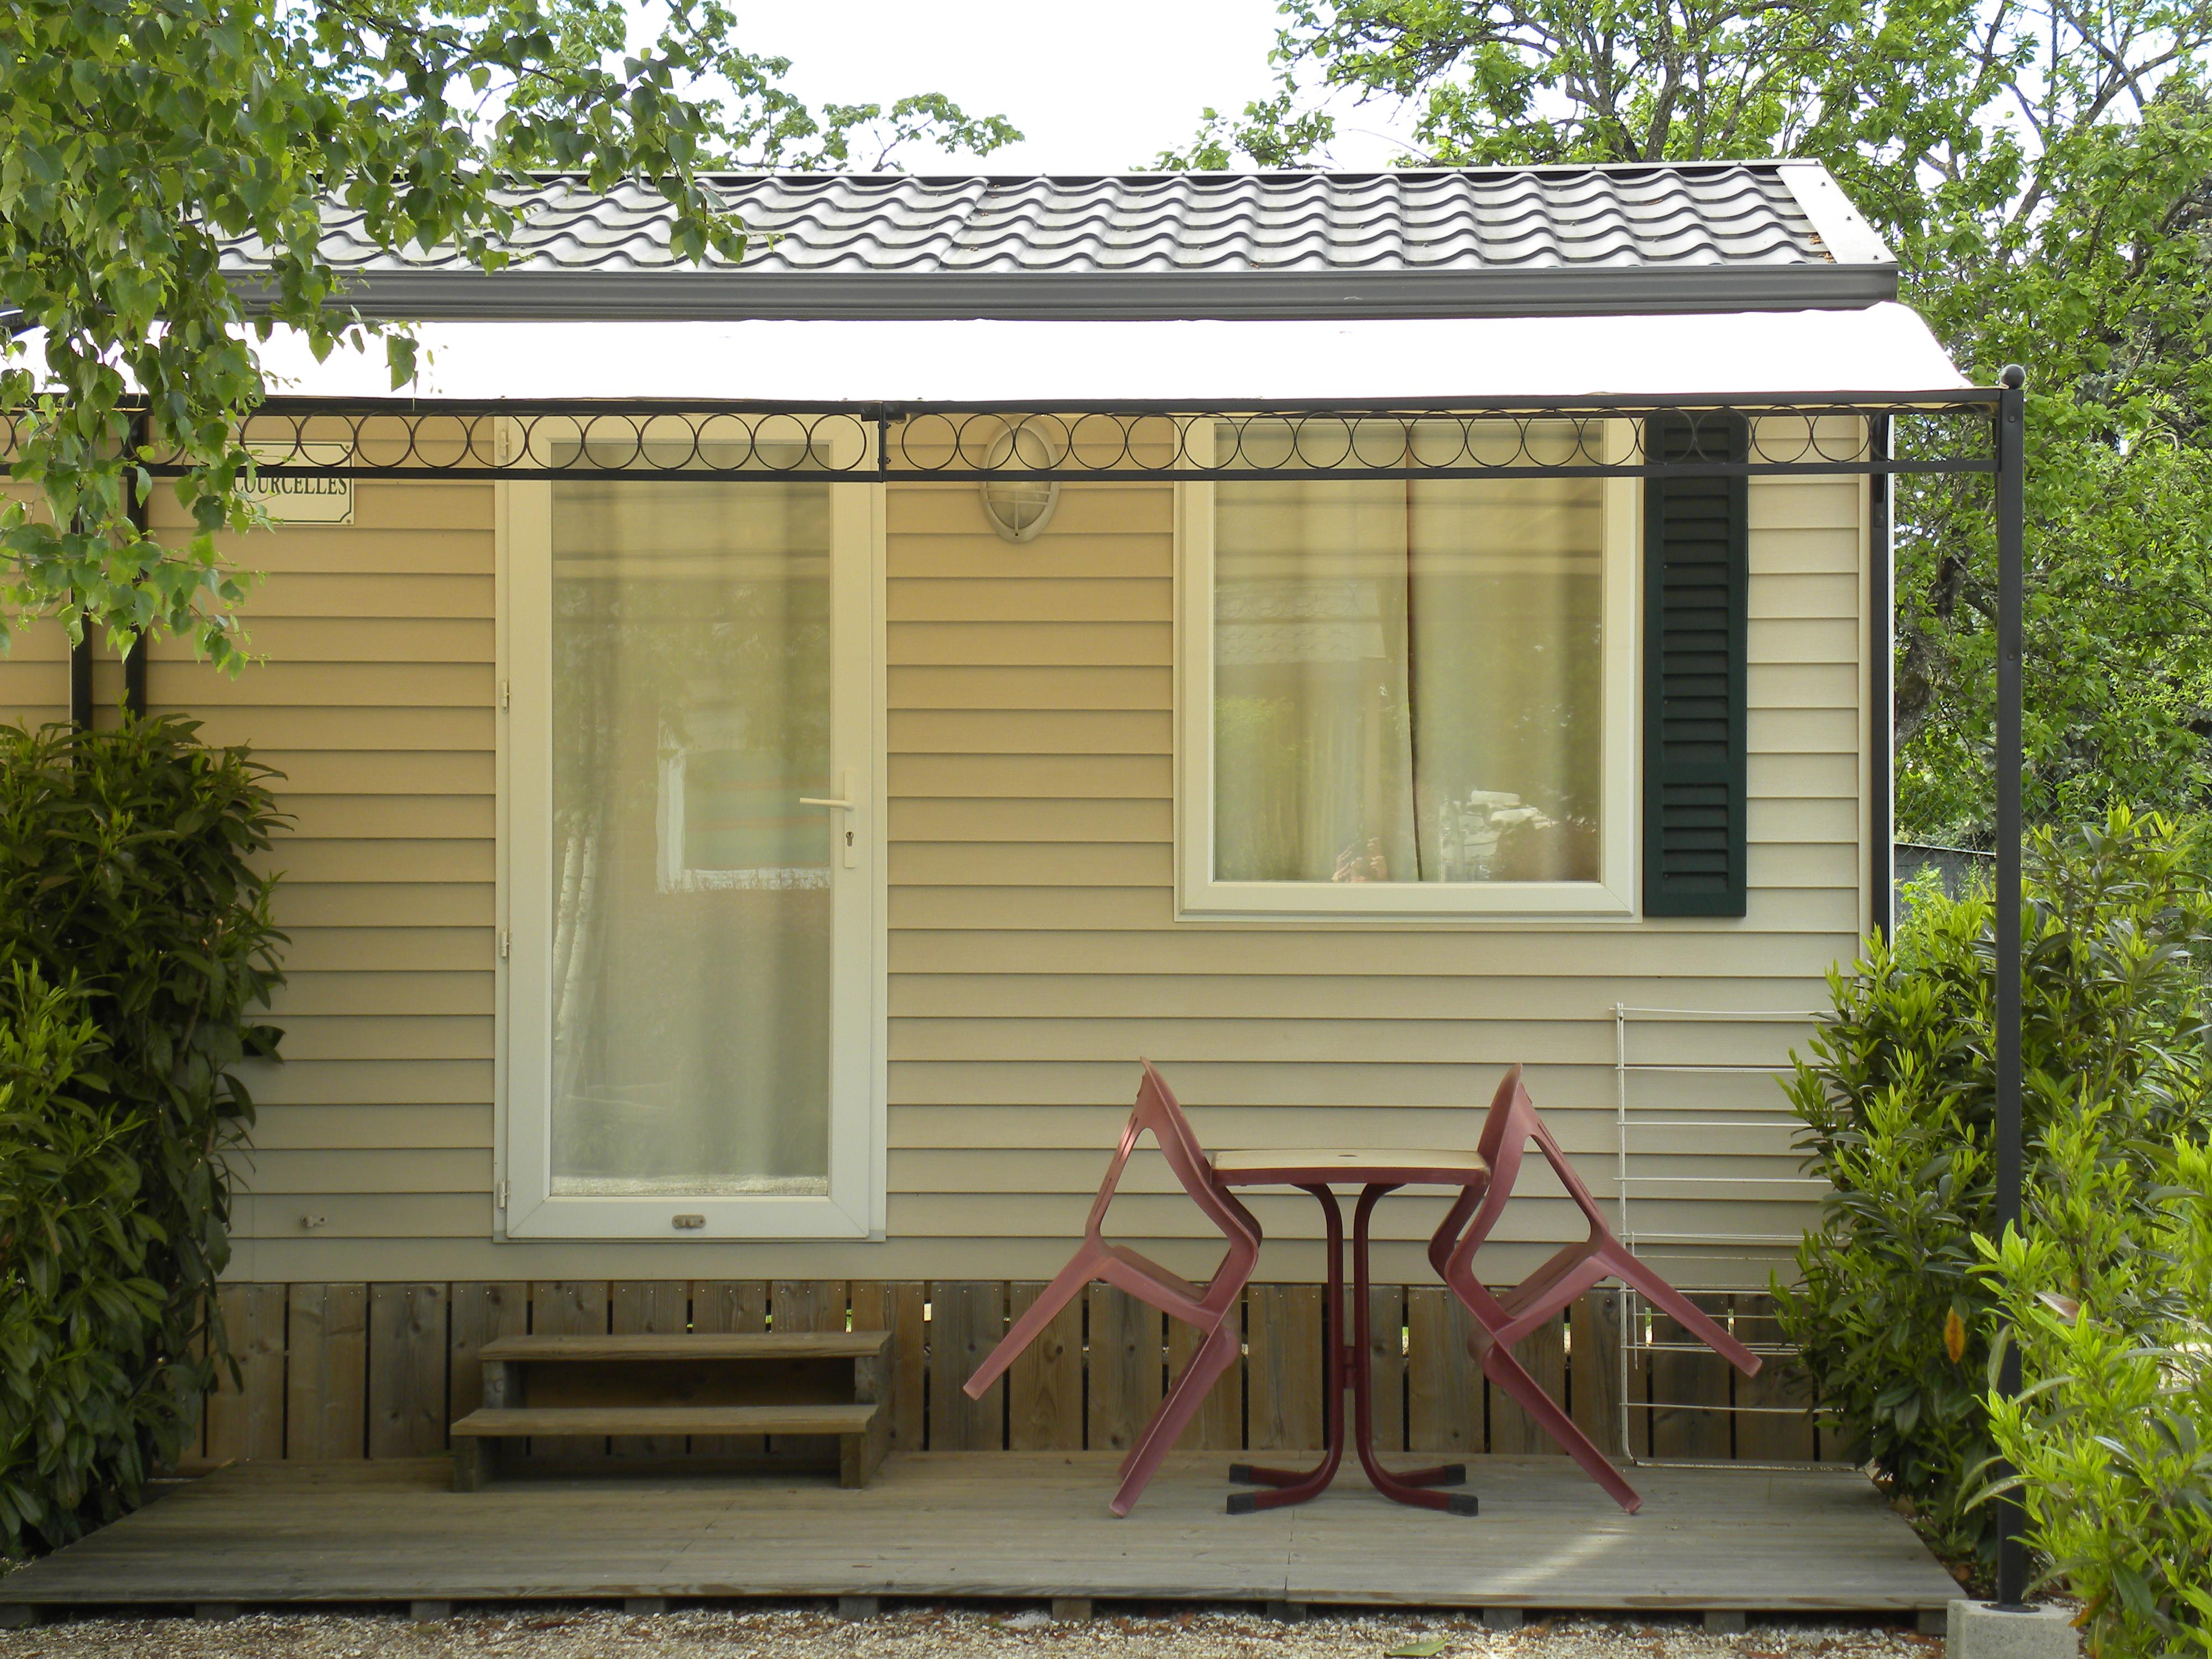 Mobil-home COURCELLES 16m2 - 1 chambre / terrasse